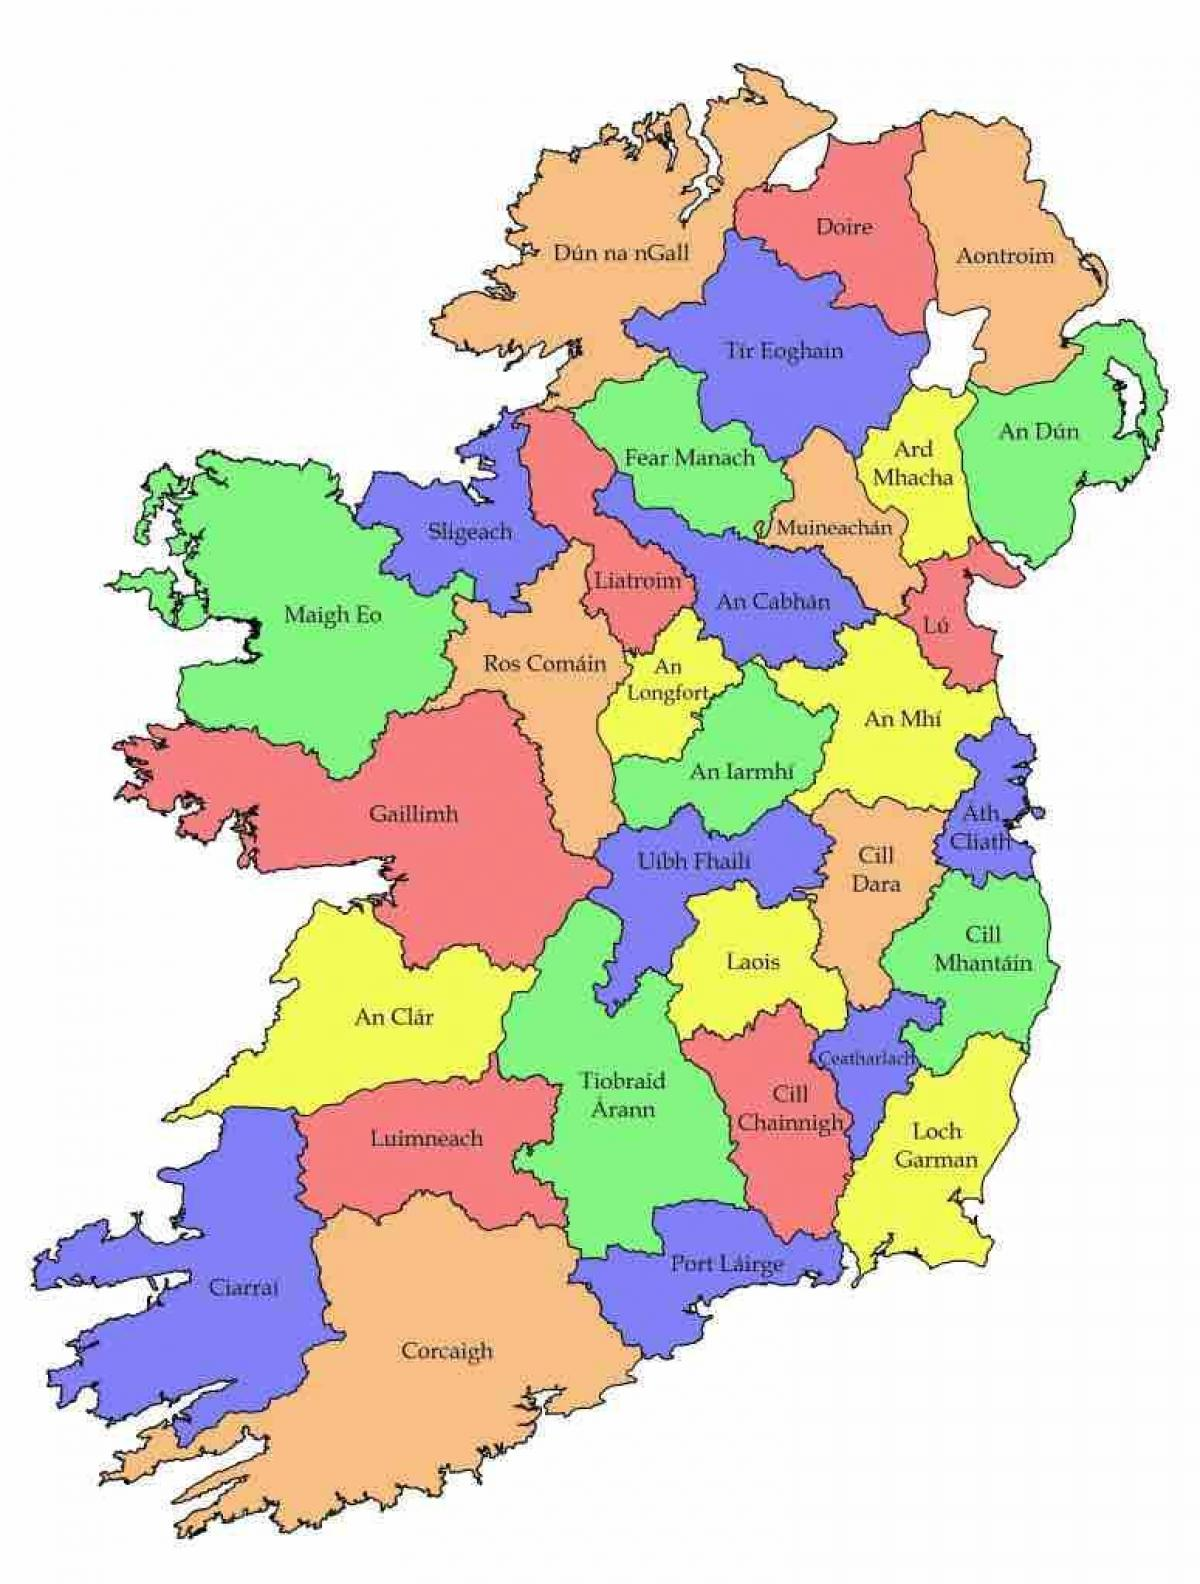 Map Of Ireland Jpg.Labelled Map Of Ireland Map Of Ireland With County Names Northern